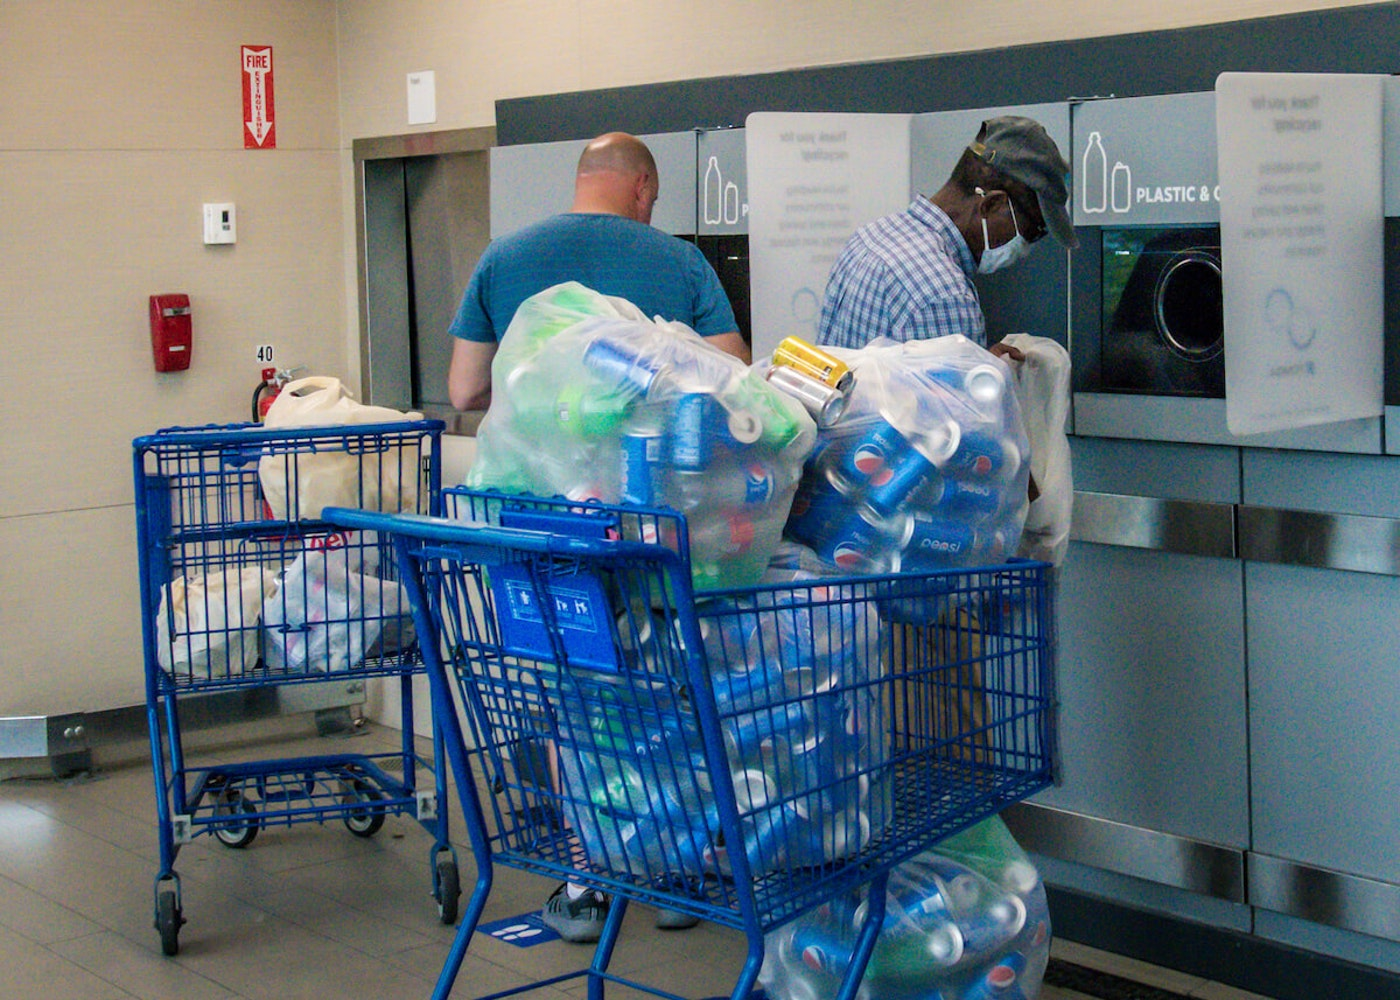 Meijer leadership is requesting patience from customers as they deal with a volume of returnable containers that they've never seen before. We've got some insight and tips from people handling a whole lot of returnables on how to make the process easier on everyone. (Photo via Meijer Newsroom)